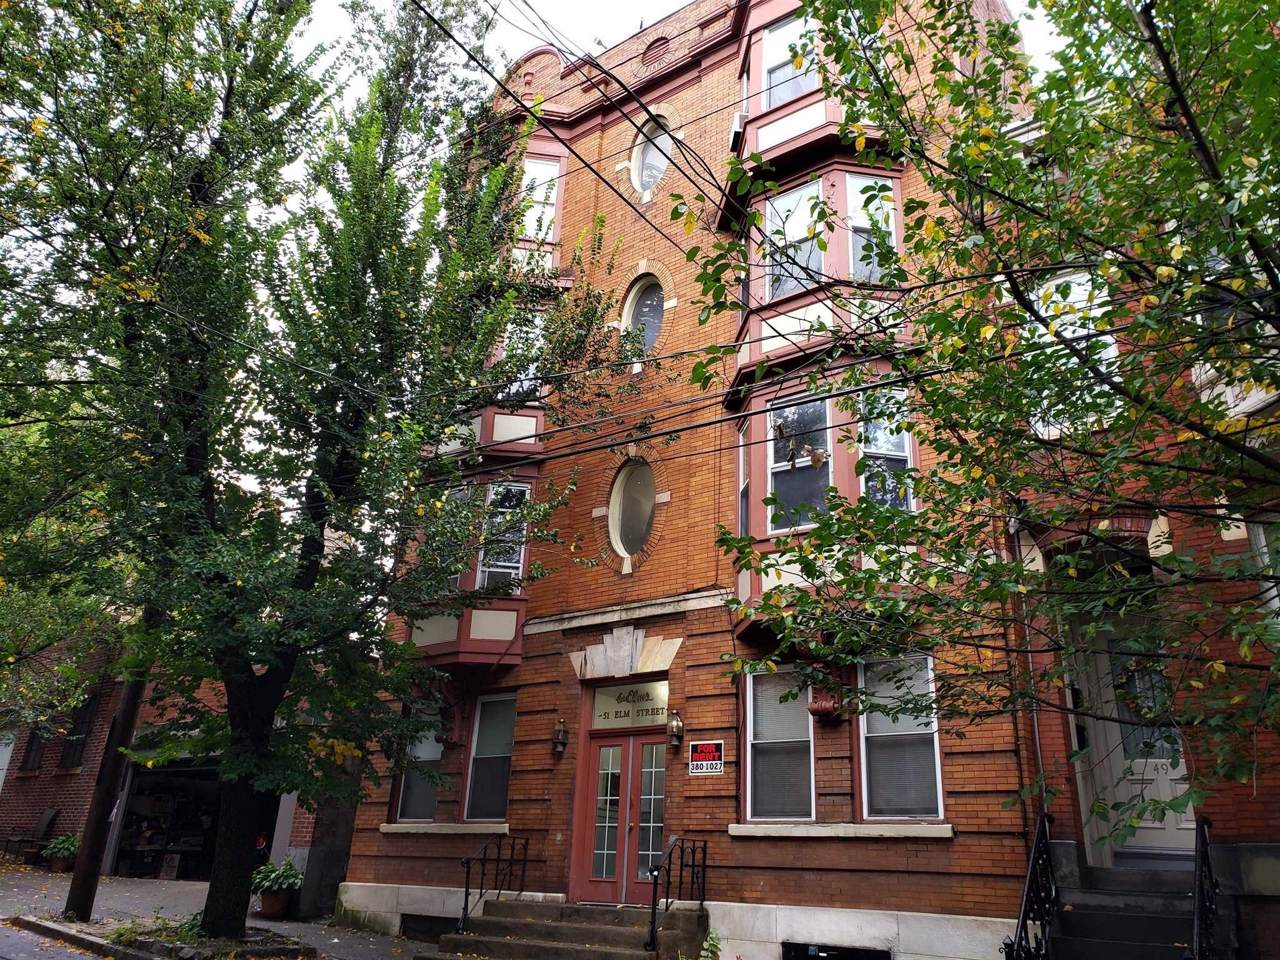 51 Elm St - Photo 1